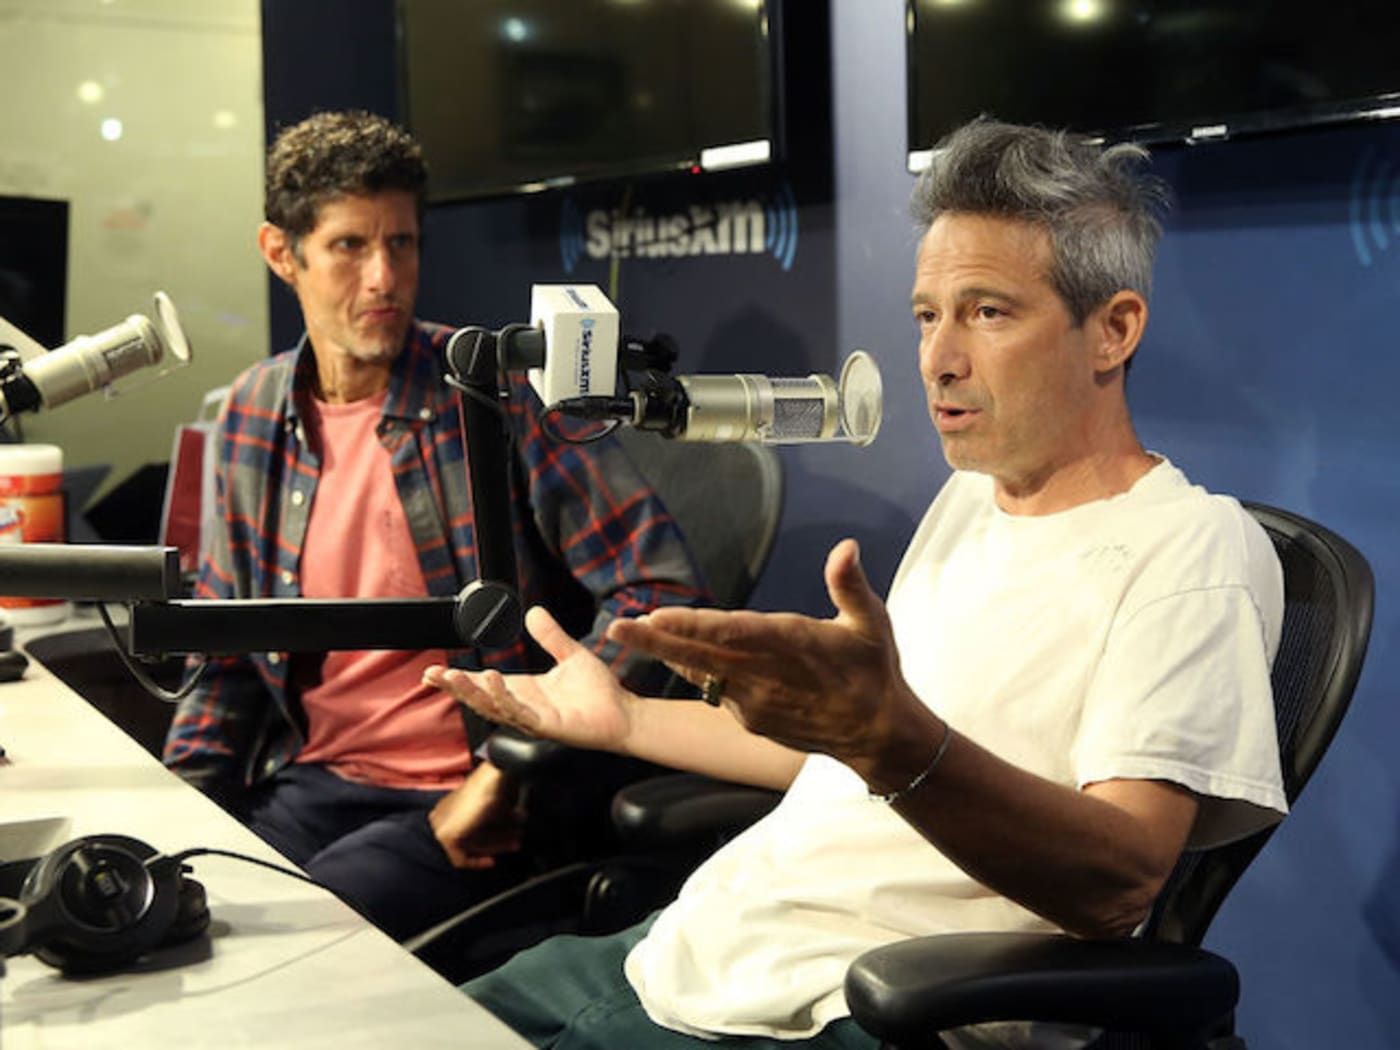 This is a picture of The Beastie Boys.